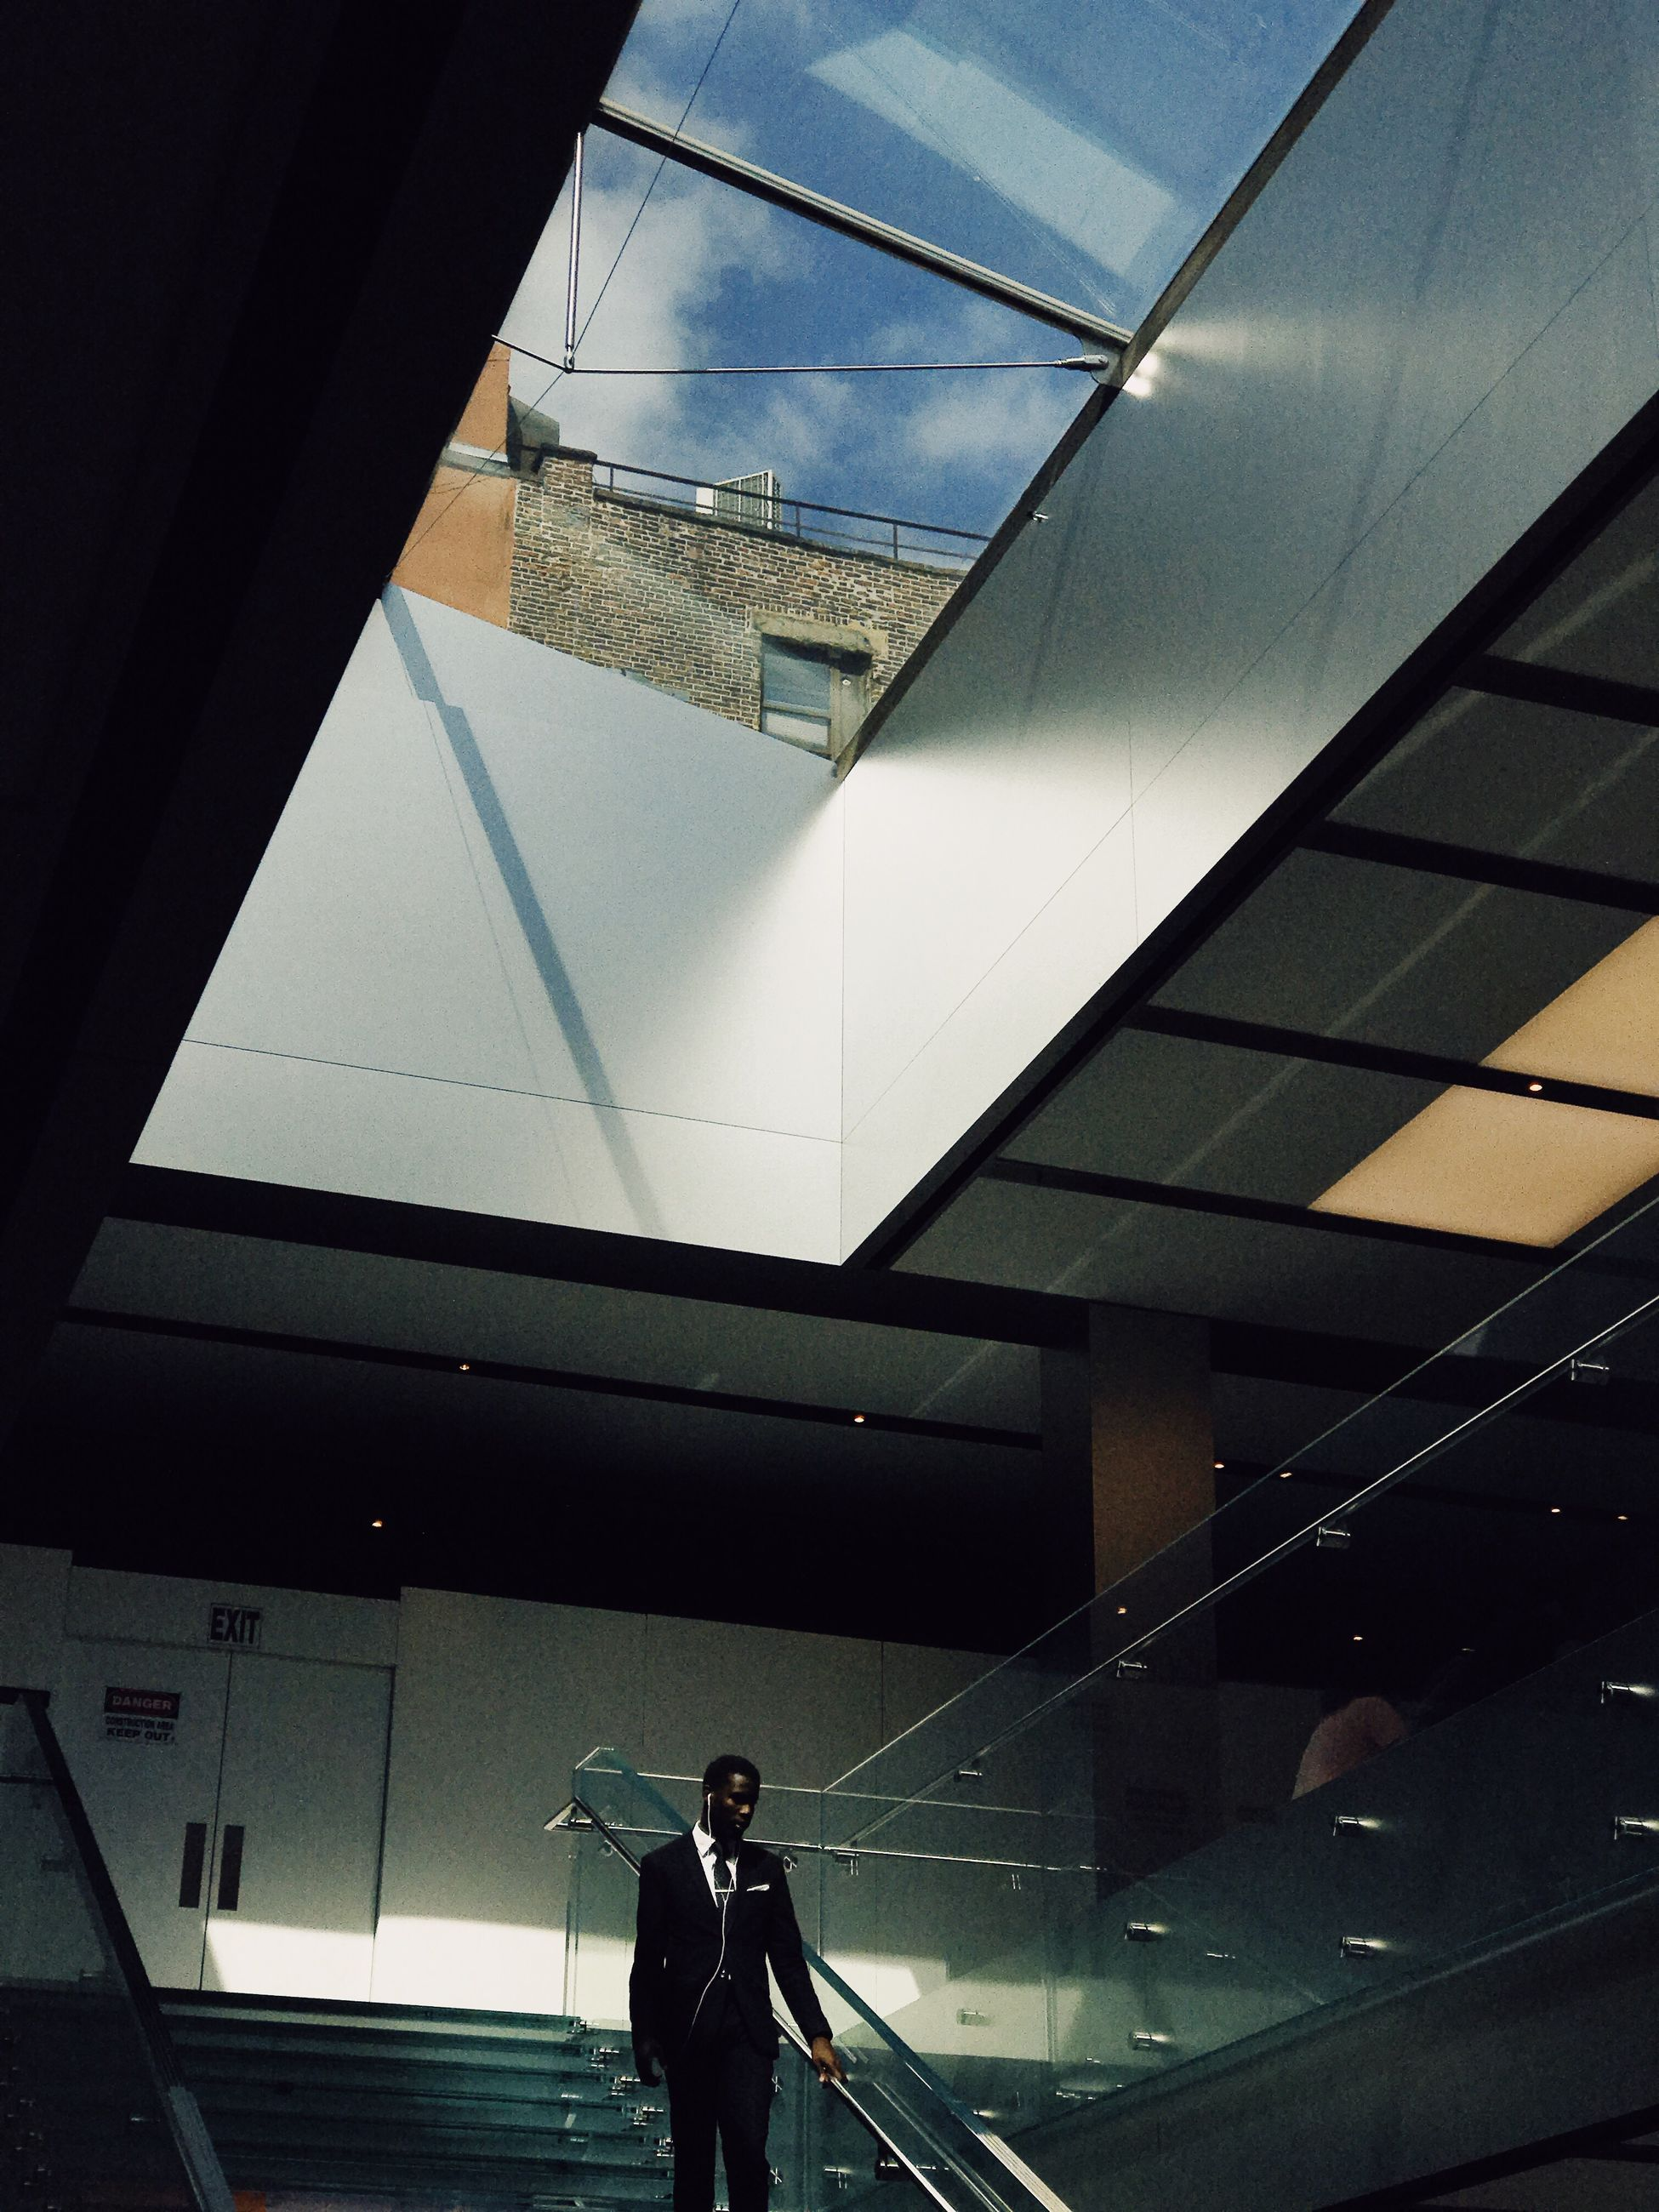 real people, architecture, one person, built structure, reflection, indoors, lifestyles, window, standing, women, men, young adult, day, low angle view, young women, illuminated, building exterior, sky, people